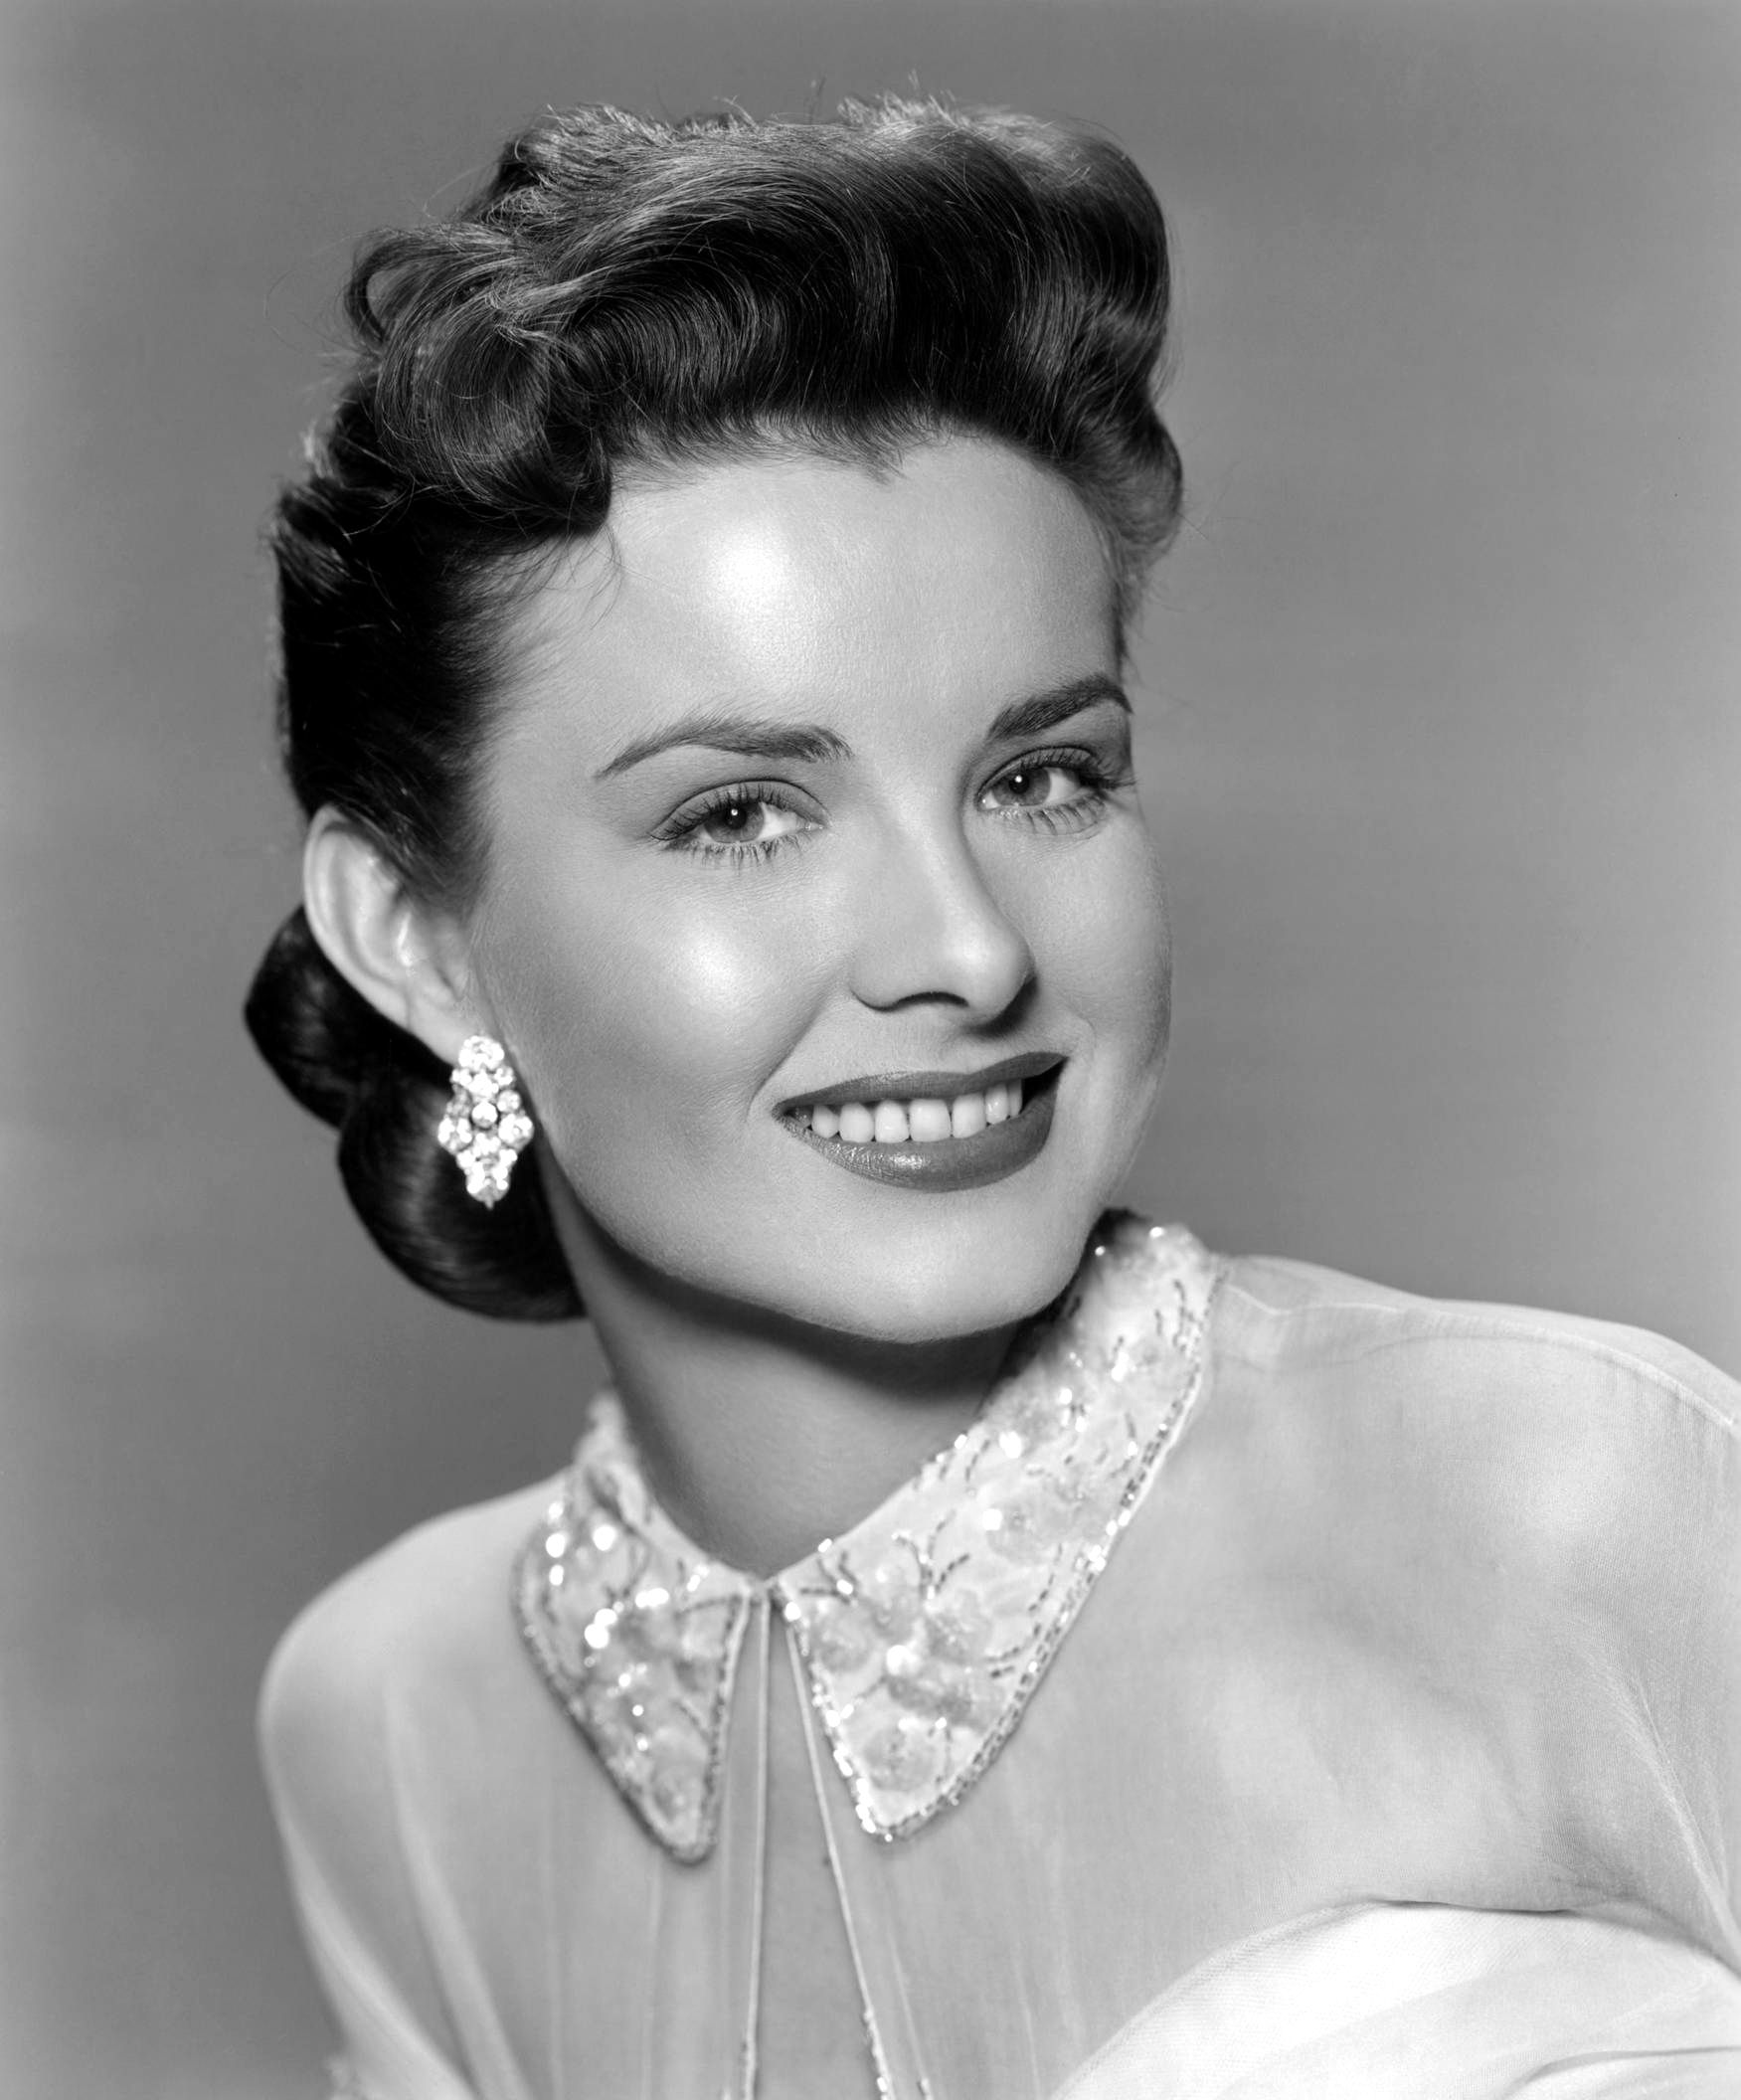 Jean Peters Jean Peters new picture